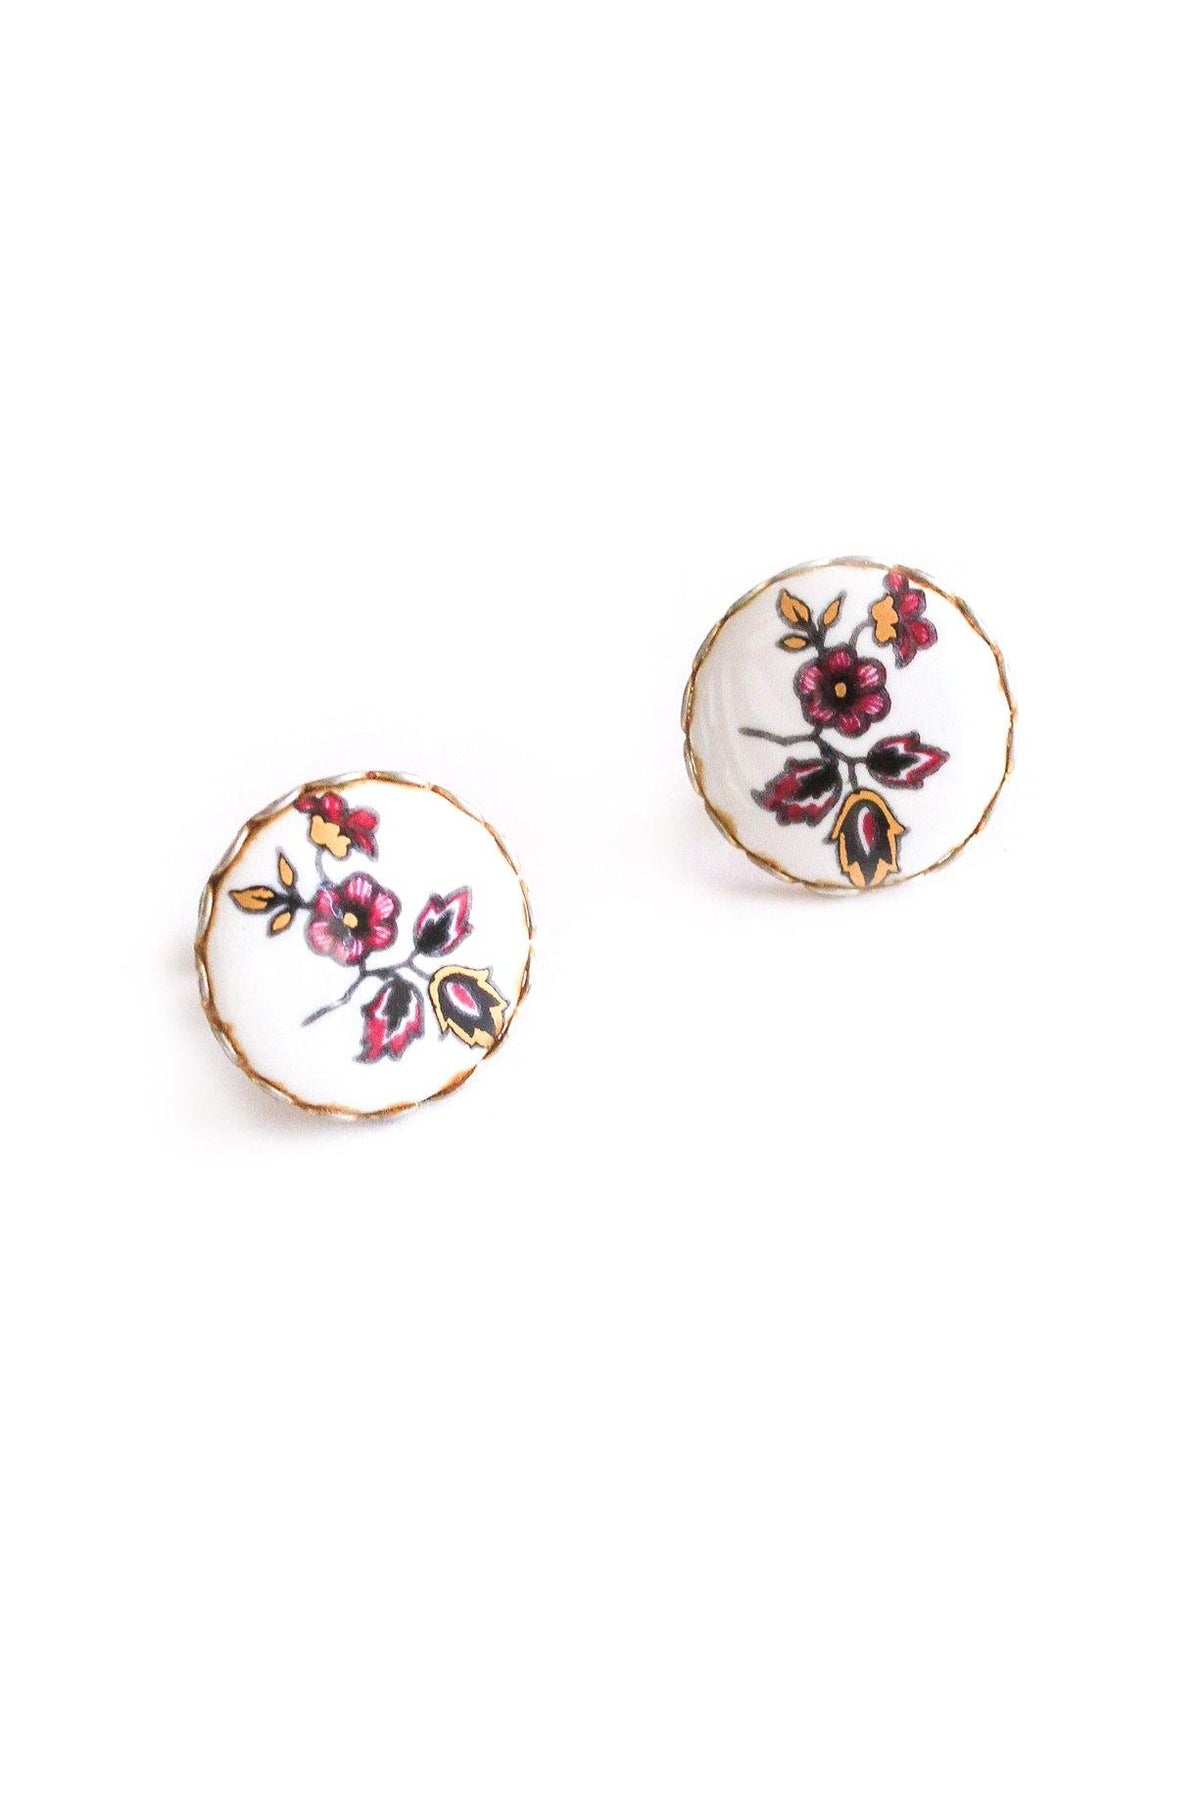 Painted floral disc vintage earrings from Sweet & Spark.